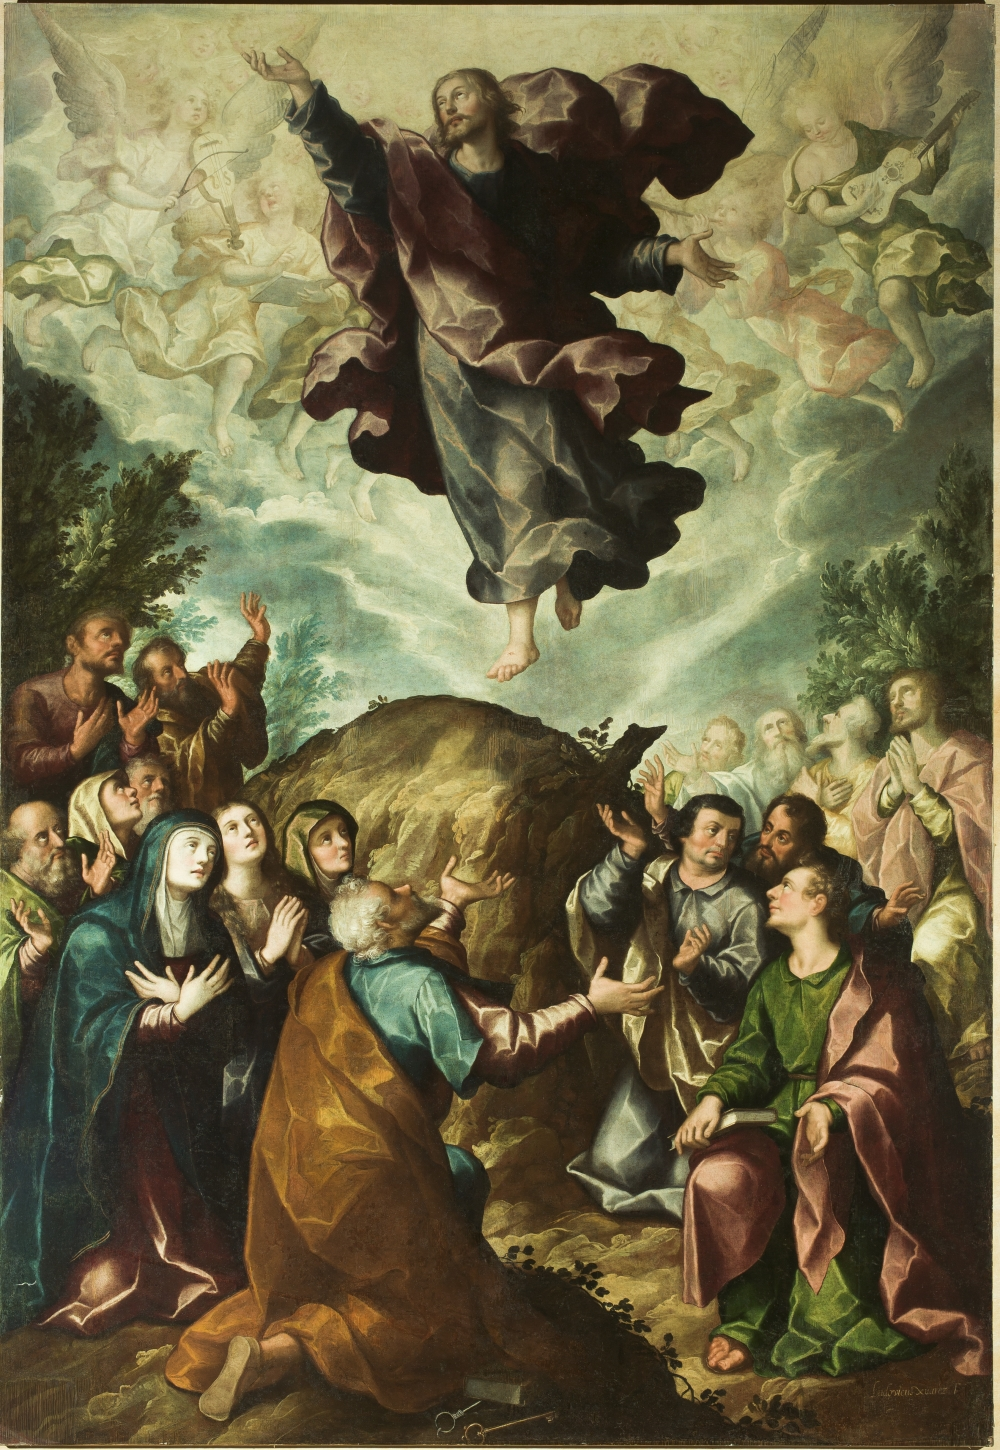 Luis Juarez, Ascension, ca. 1625-30.